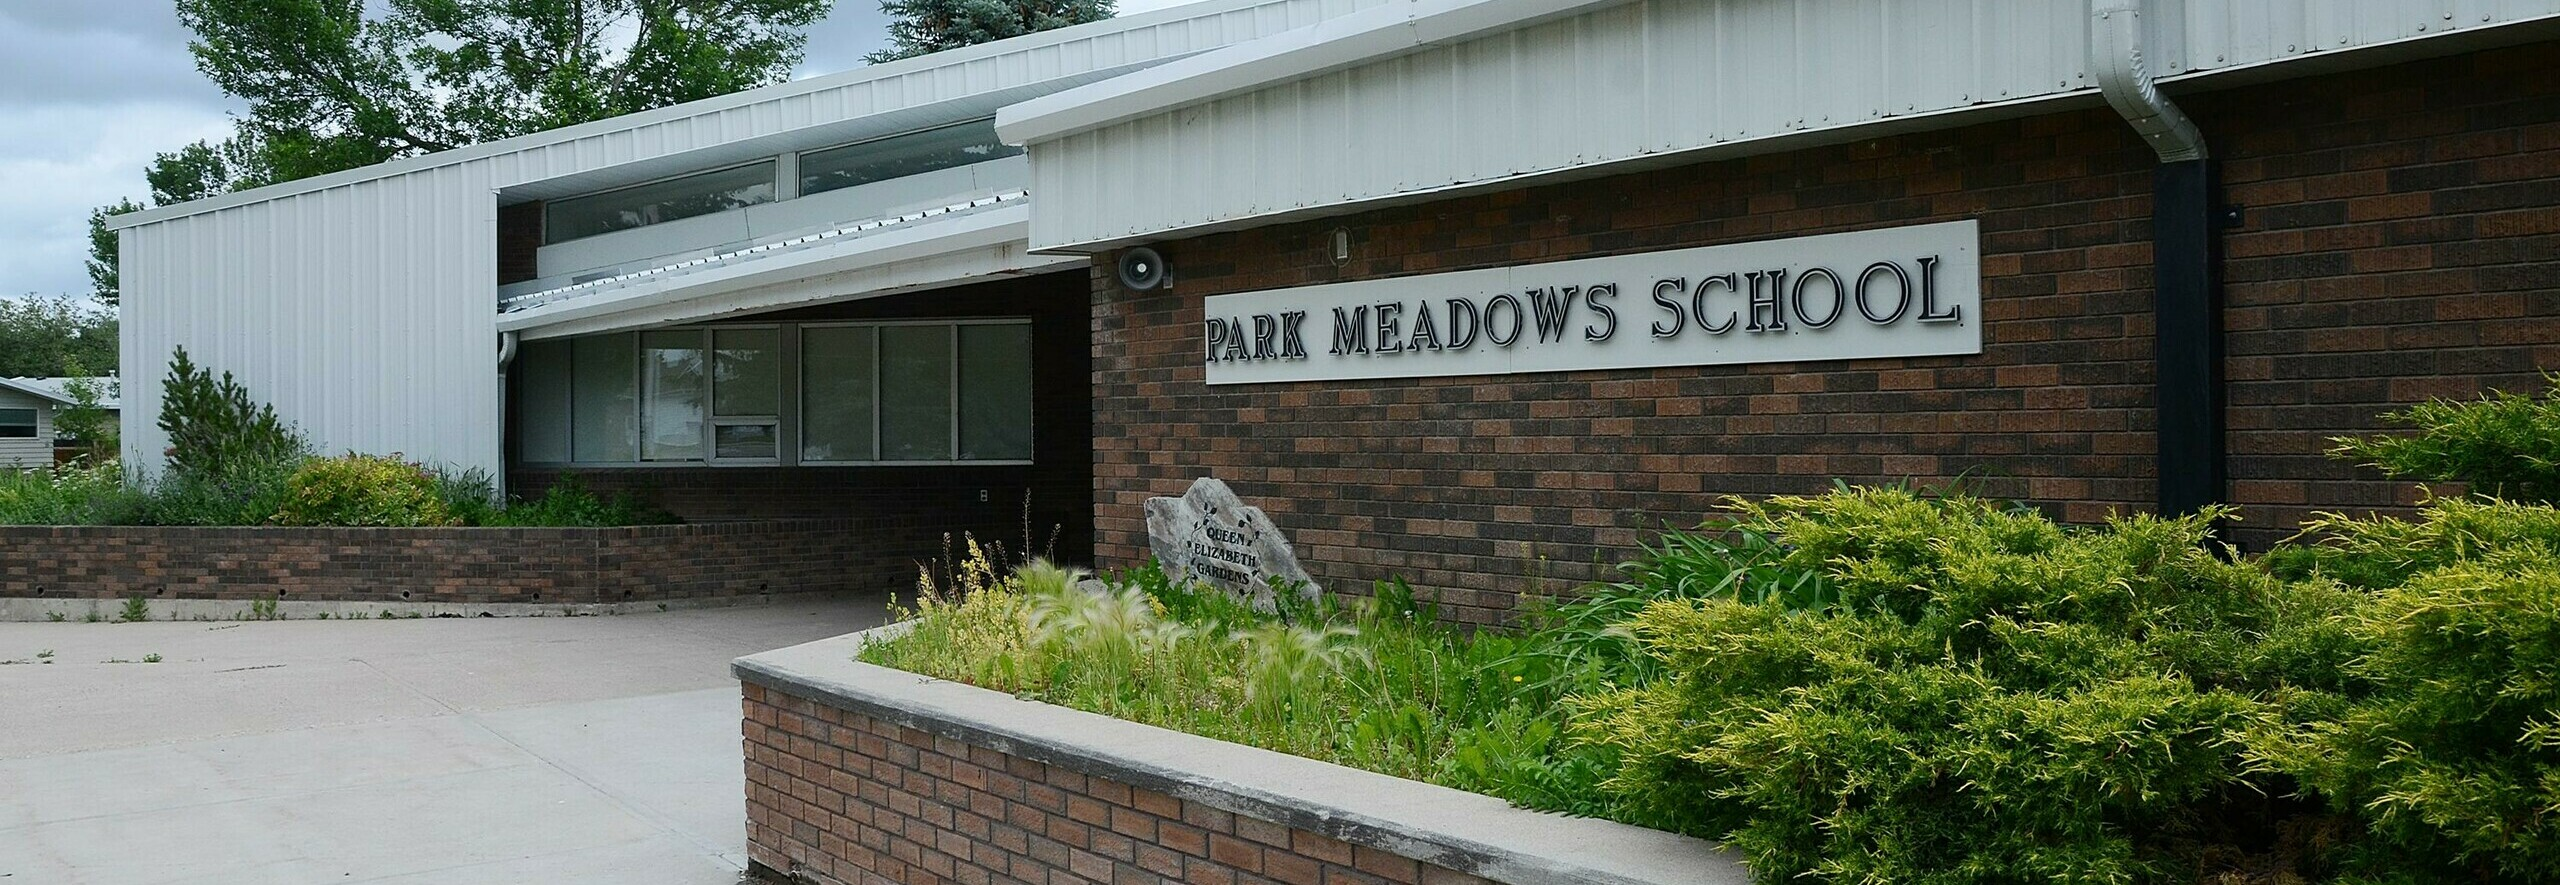 Park Meadows Elementary School Banner Photo